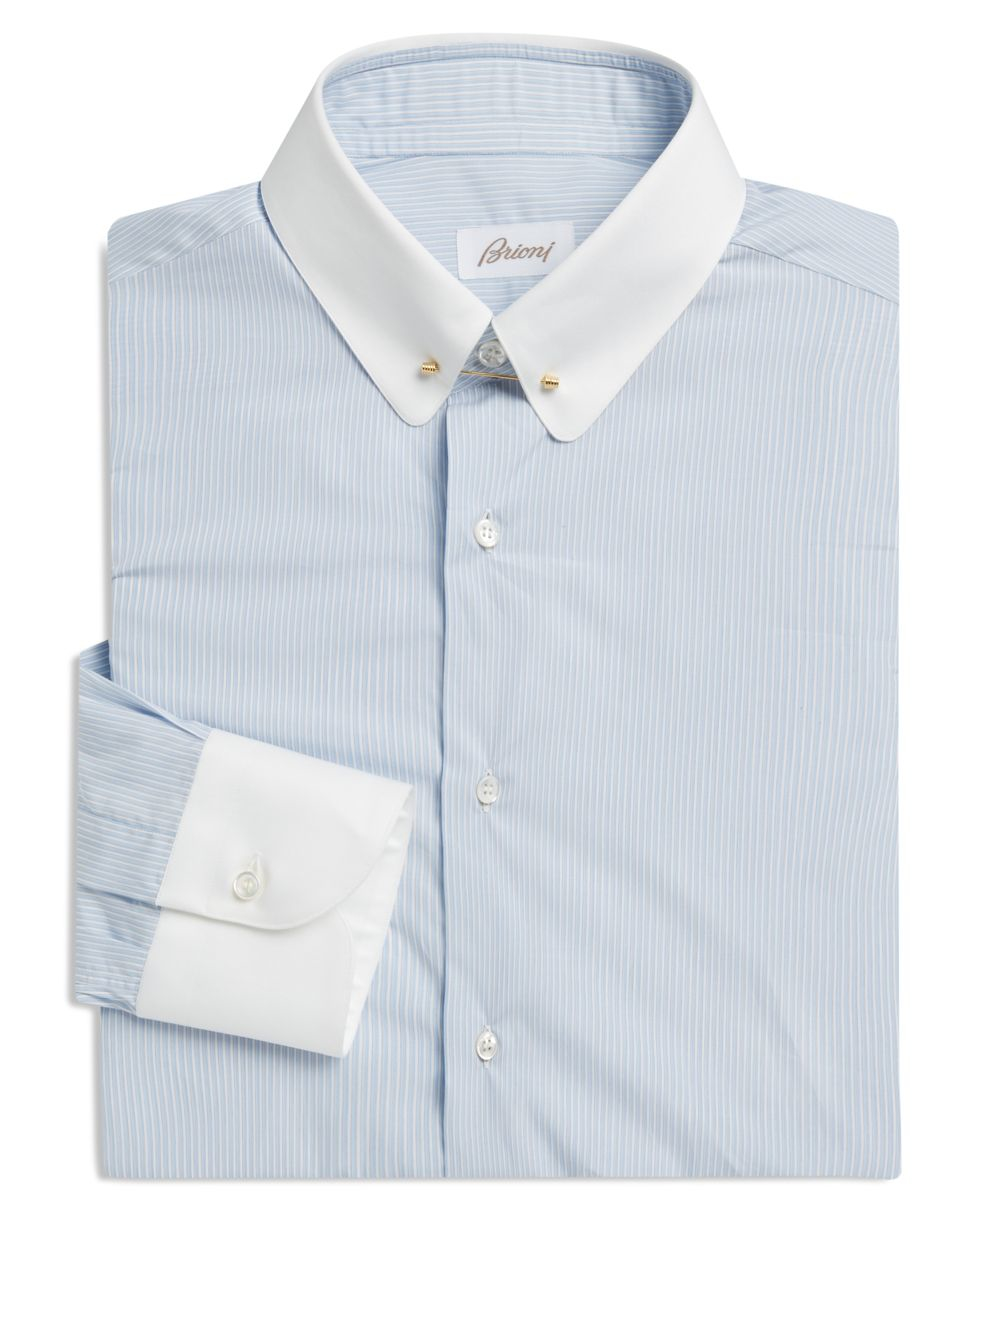 Brioni contrast collar cuff fitted dress shirt in blue for Mens dress shirts with contrasting collars and cuffs